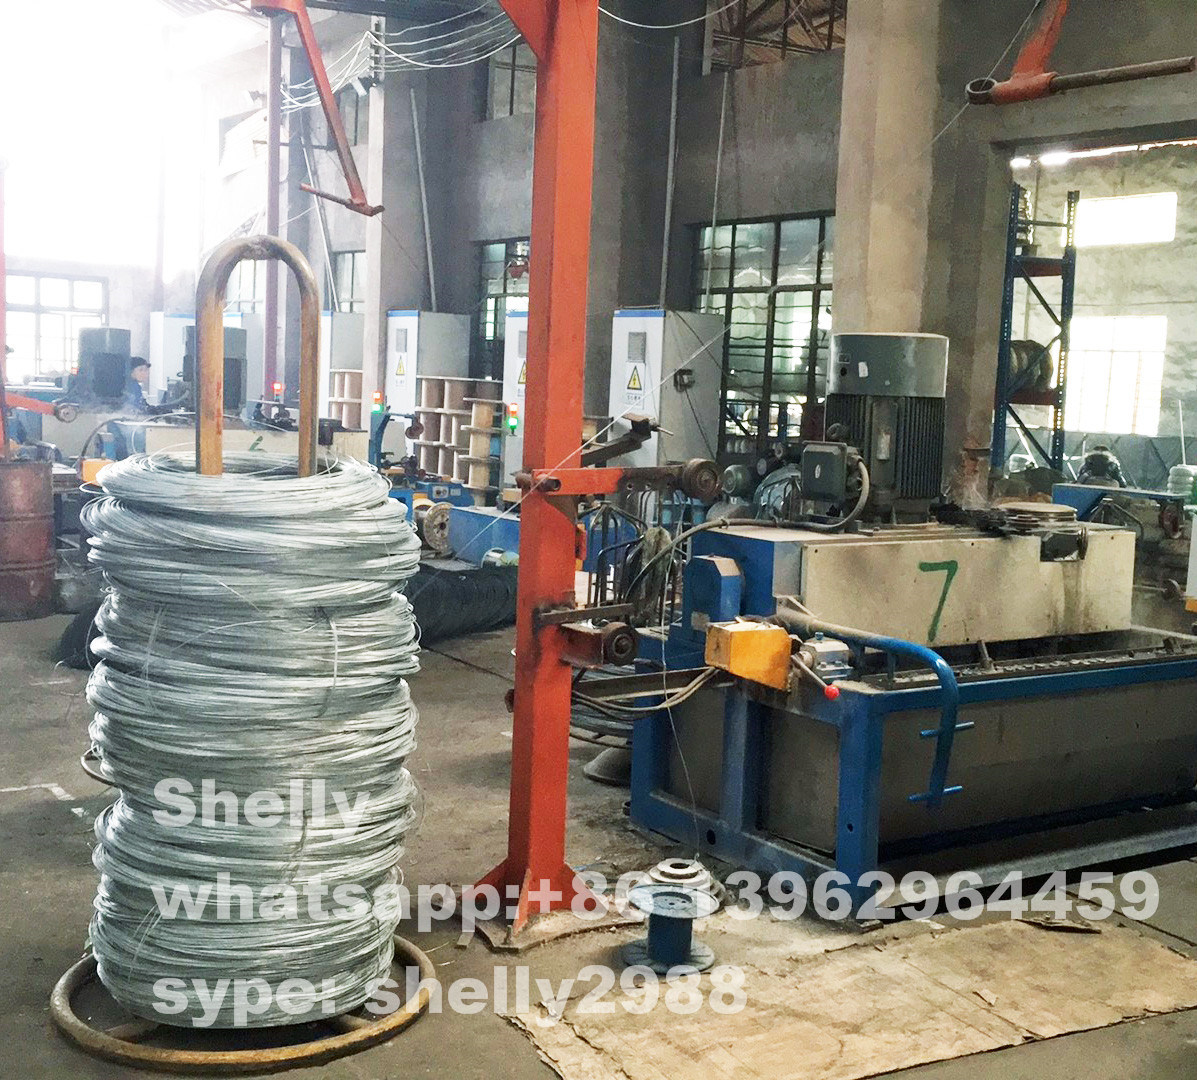 Wholesale China Products Wire for Steel Fibre, Steel Wire for Steel ...